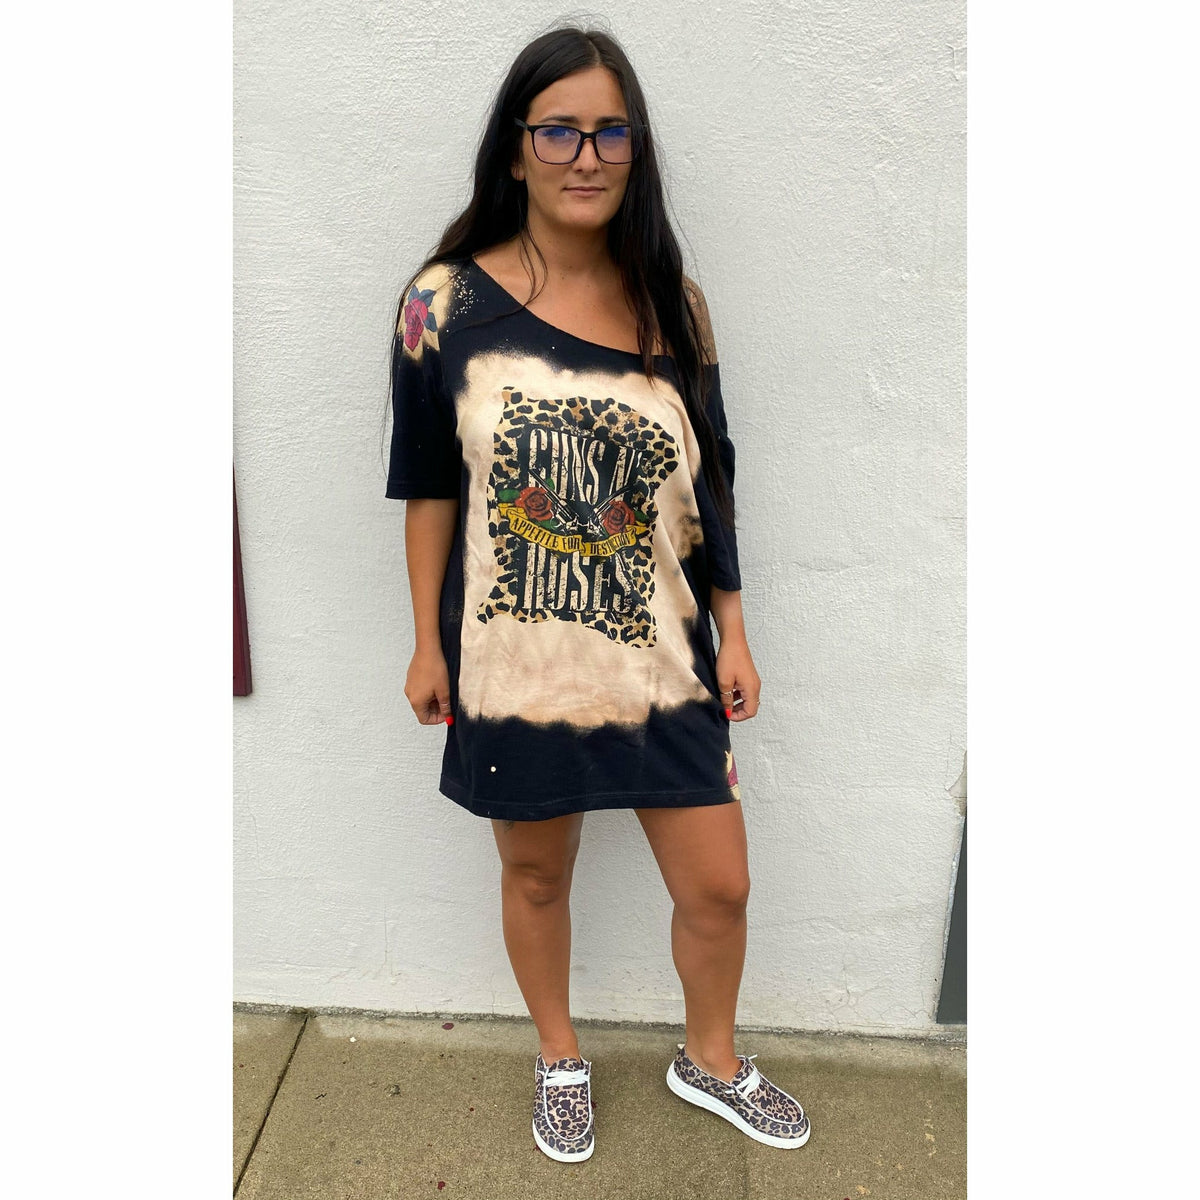 Guns n Roses T-Shirt Dress